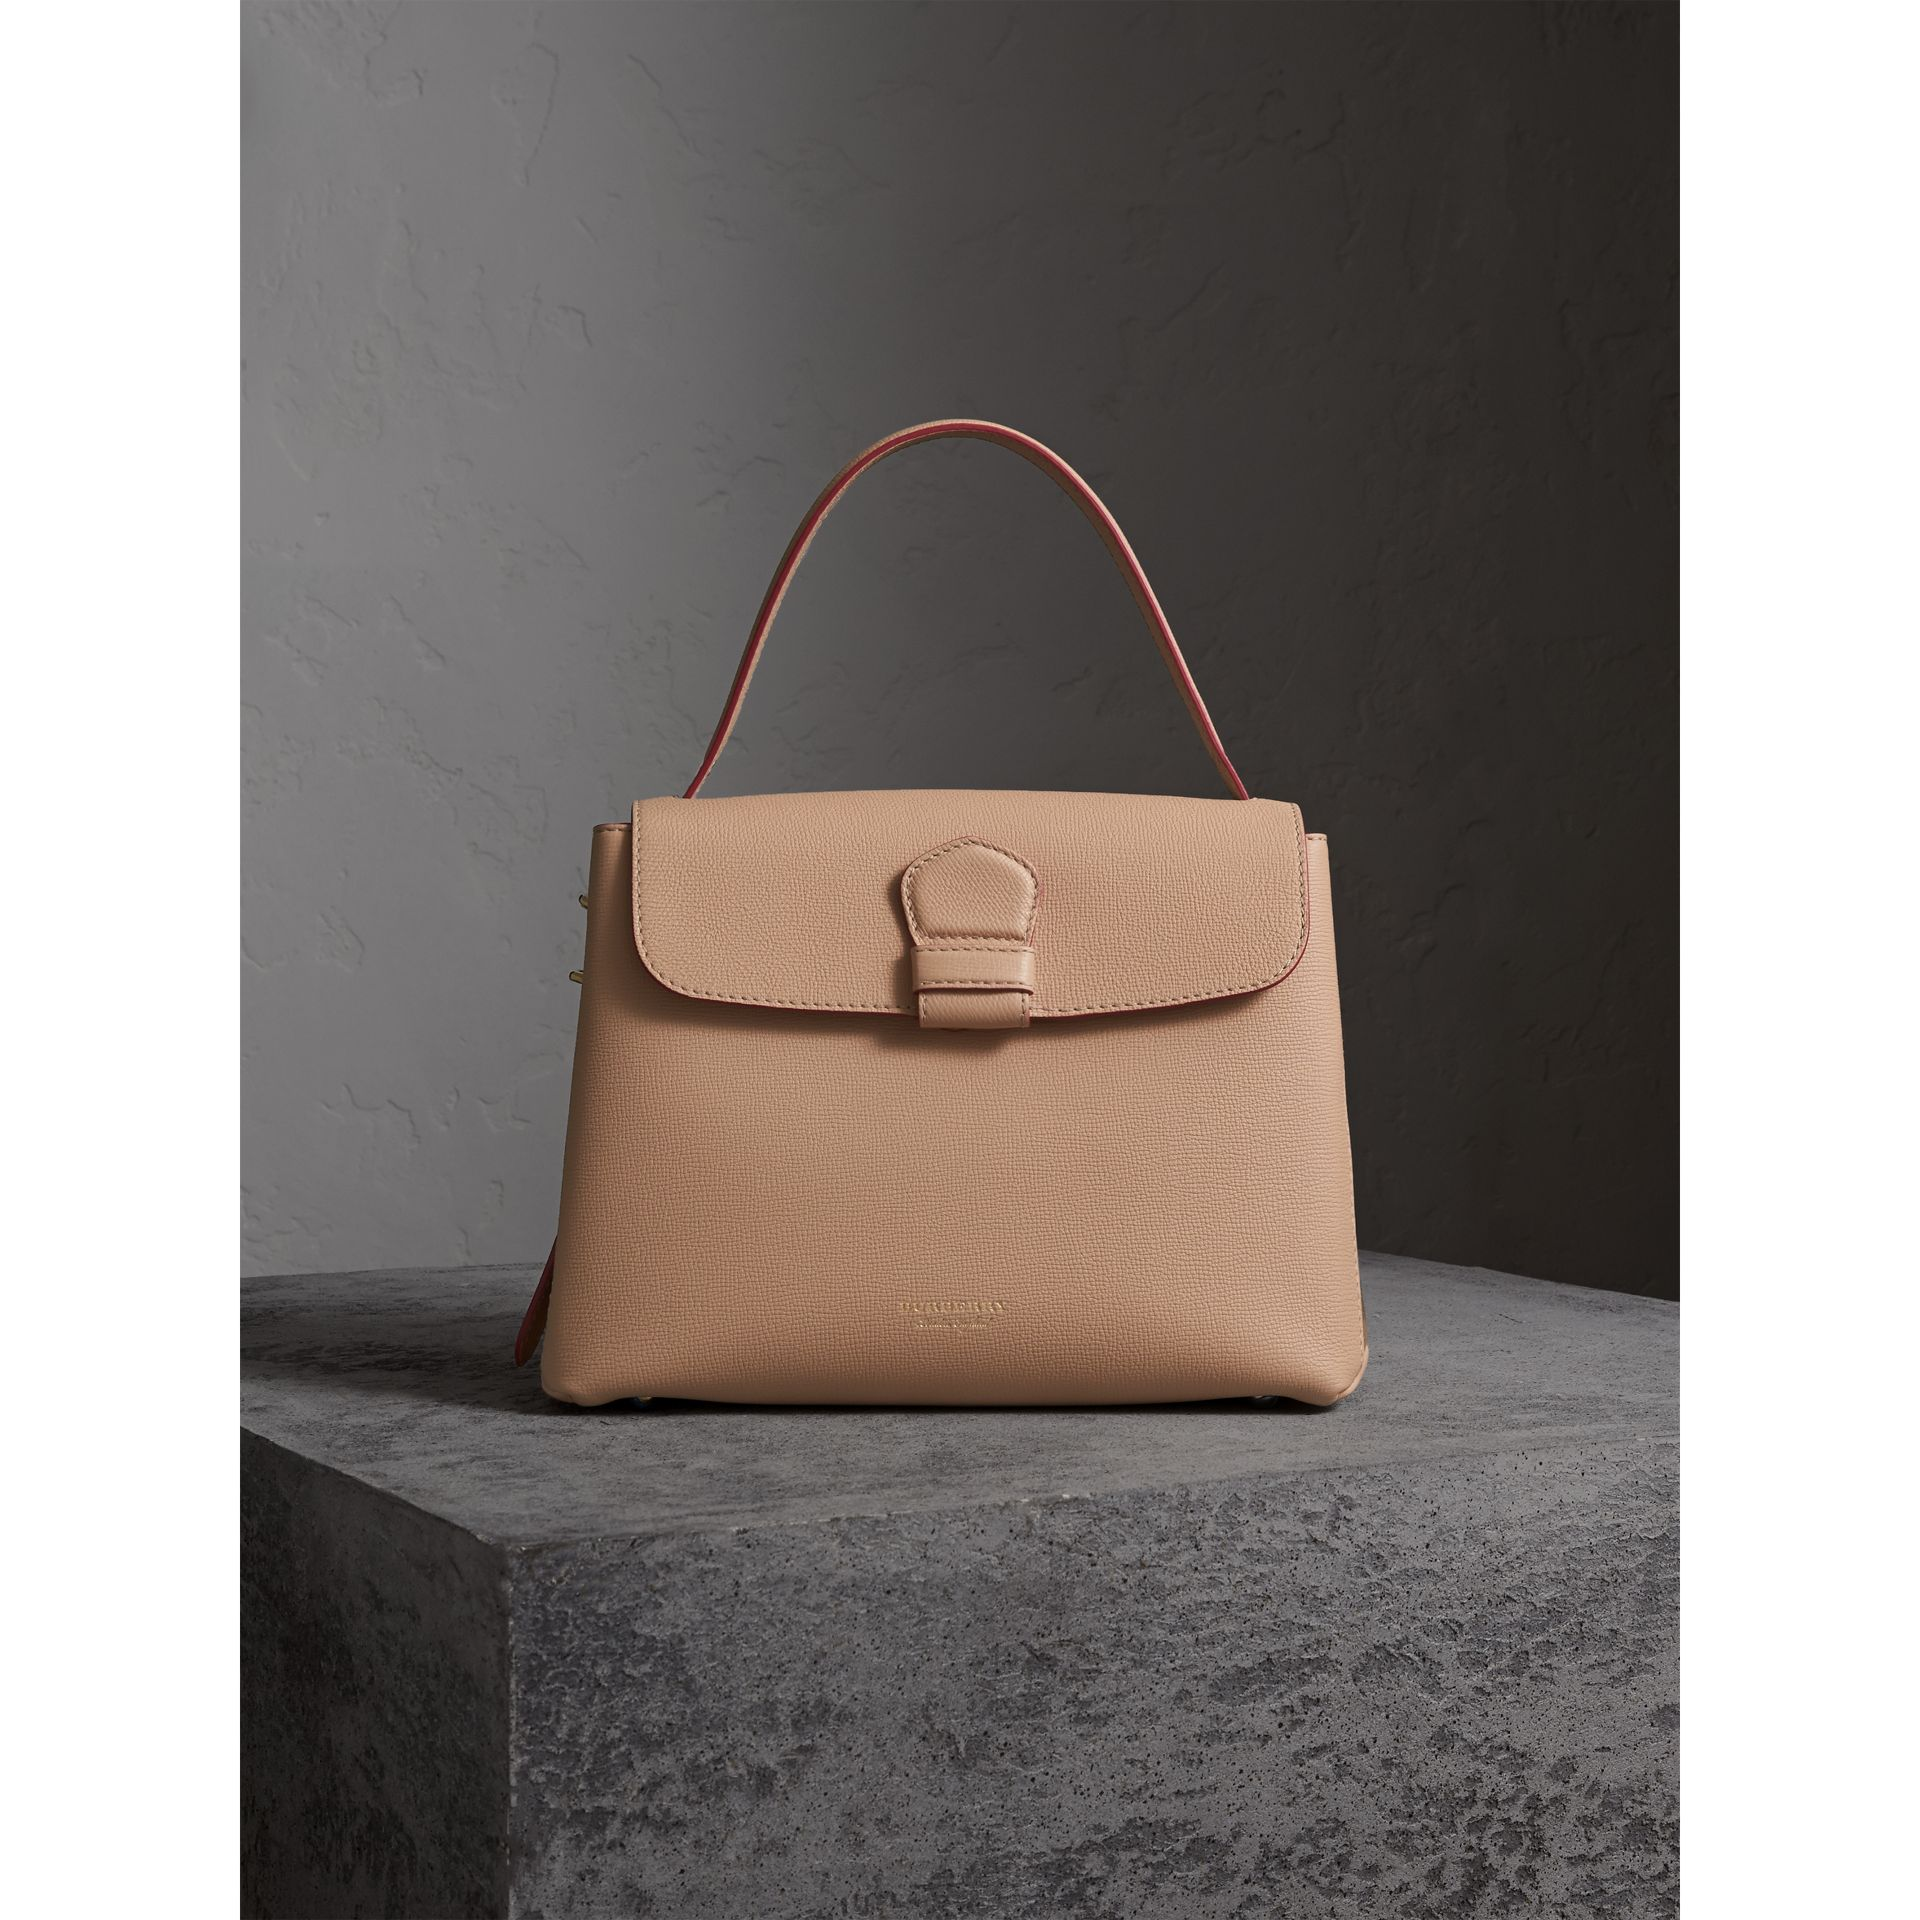 Medium Grainy Leather and House Check Tote Bag in Pale Apricot - Women | Burberry Australia - gallery image 7